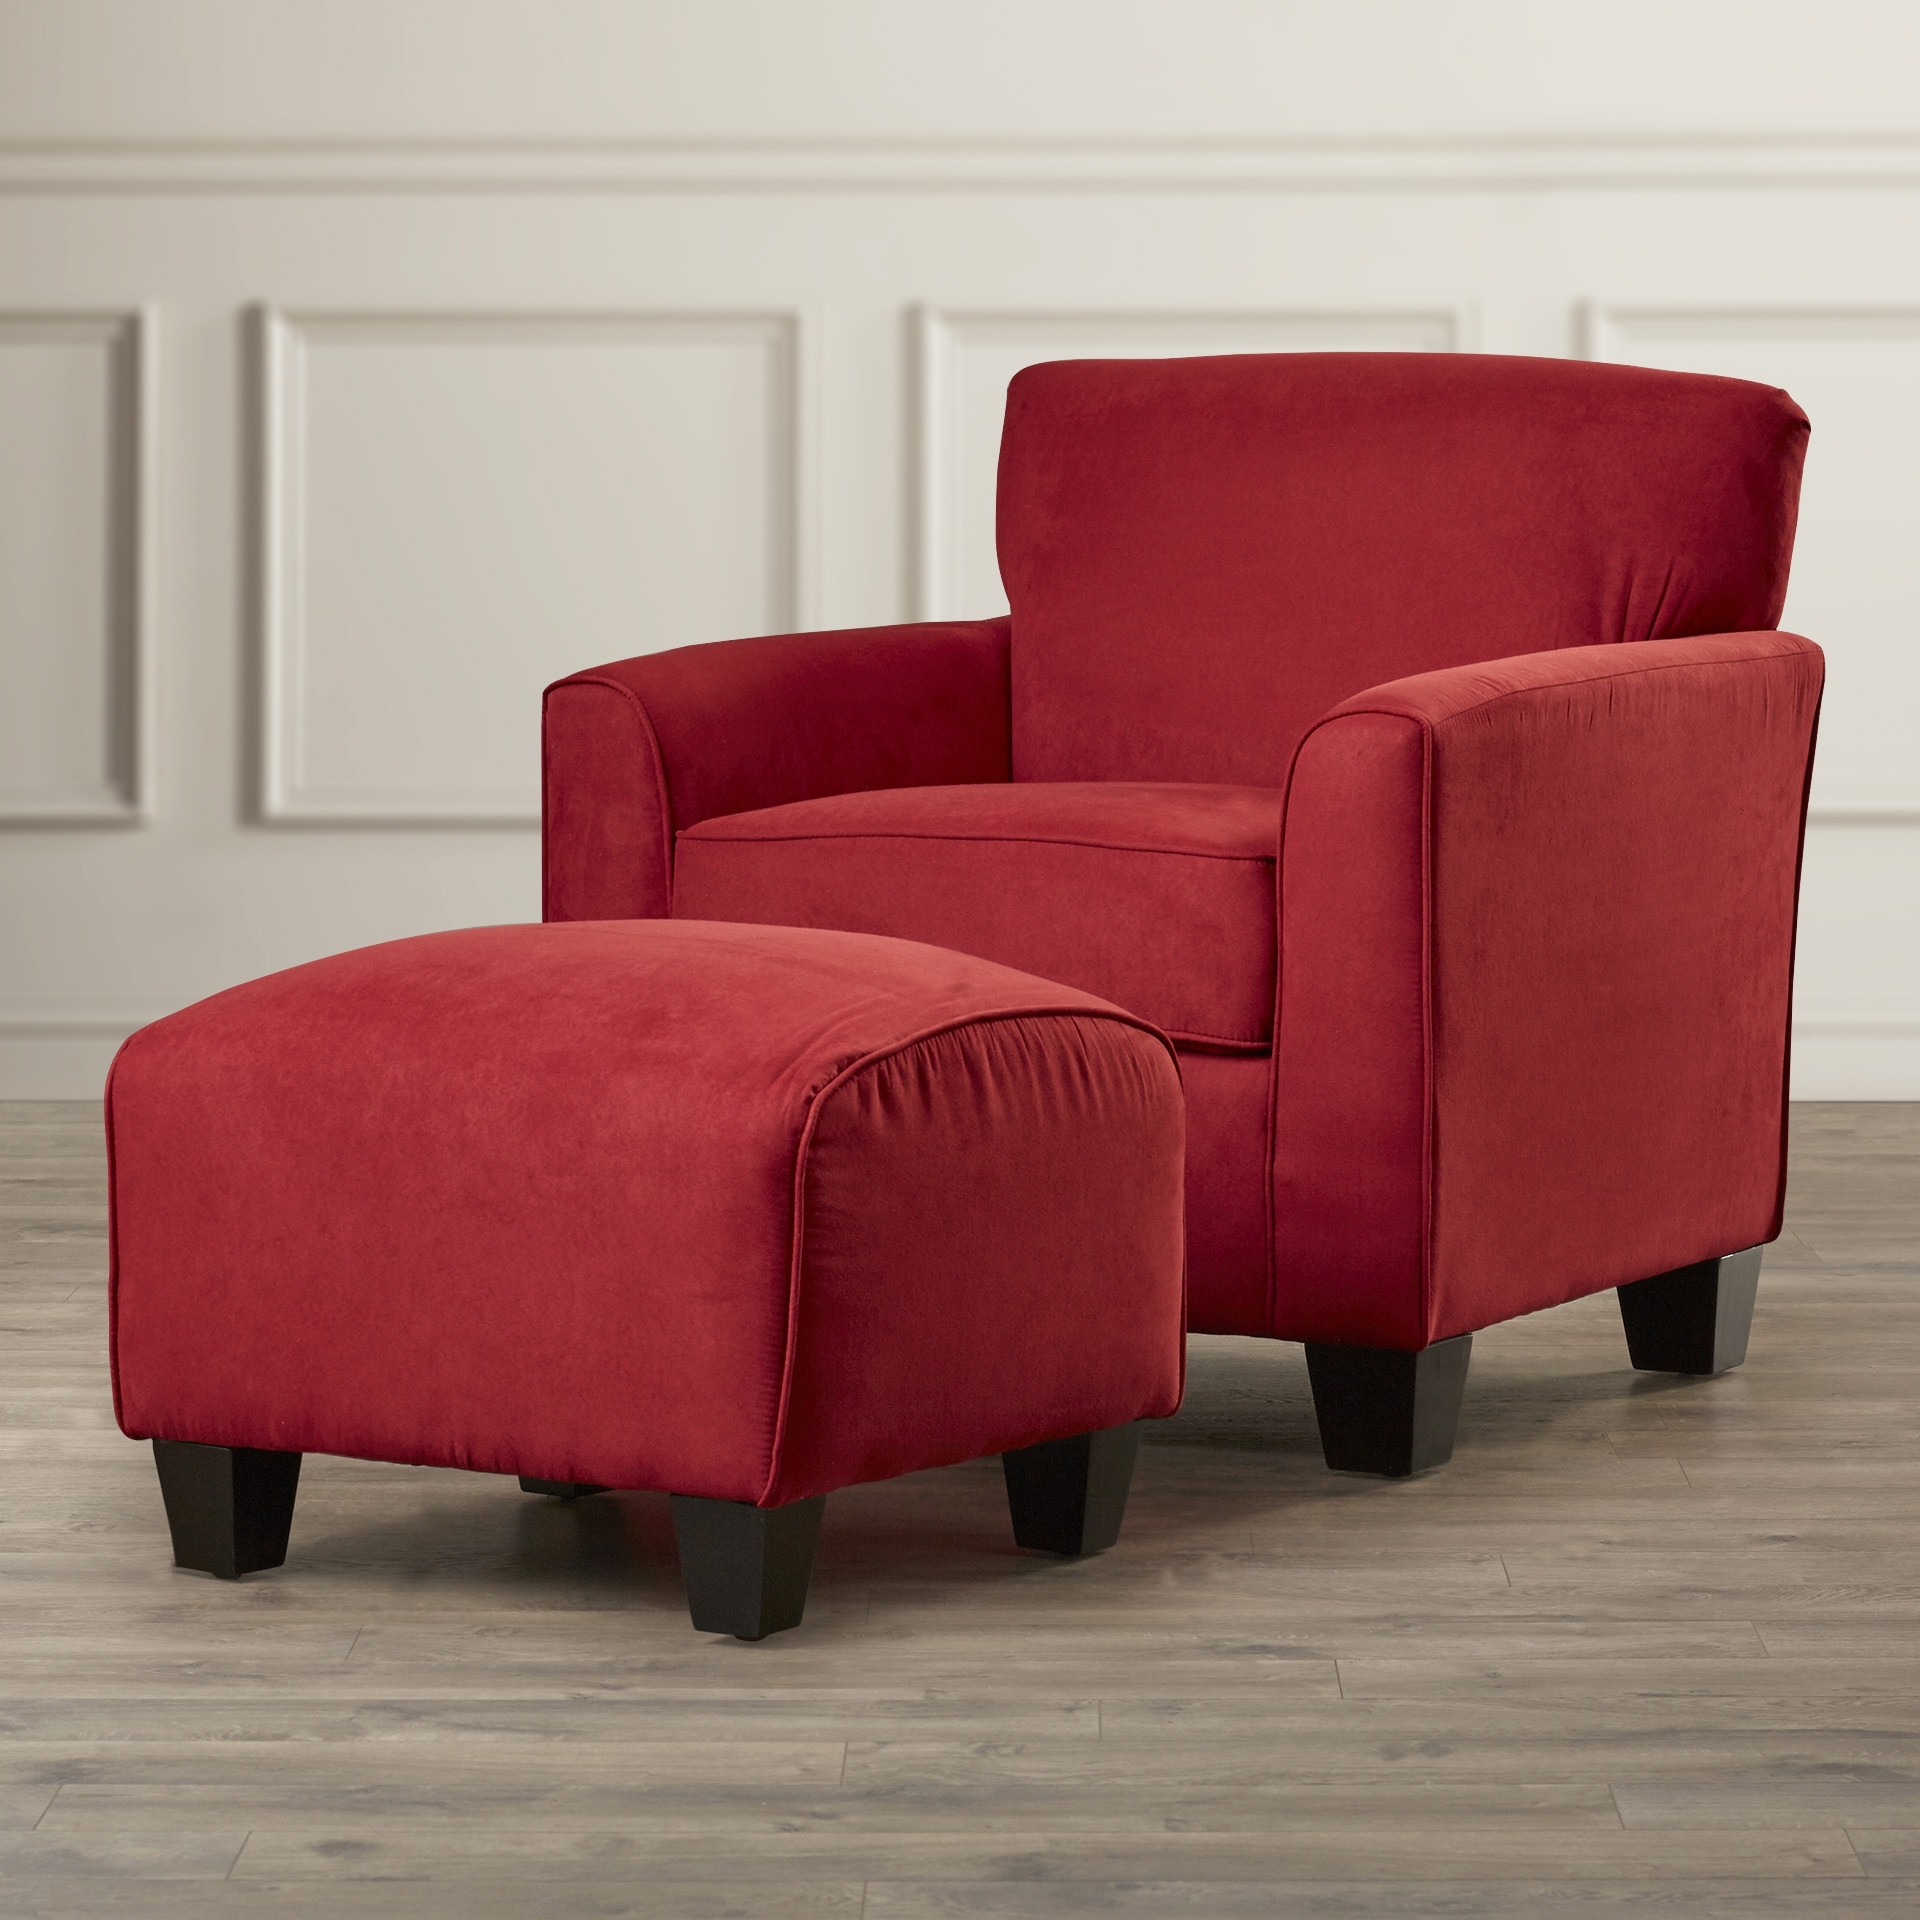 Beautiful Chair Ottoman Set (37 Photos) | 561Restaurant In Chairs With Ottoman (View 5 of 10)